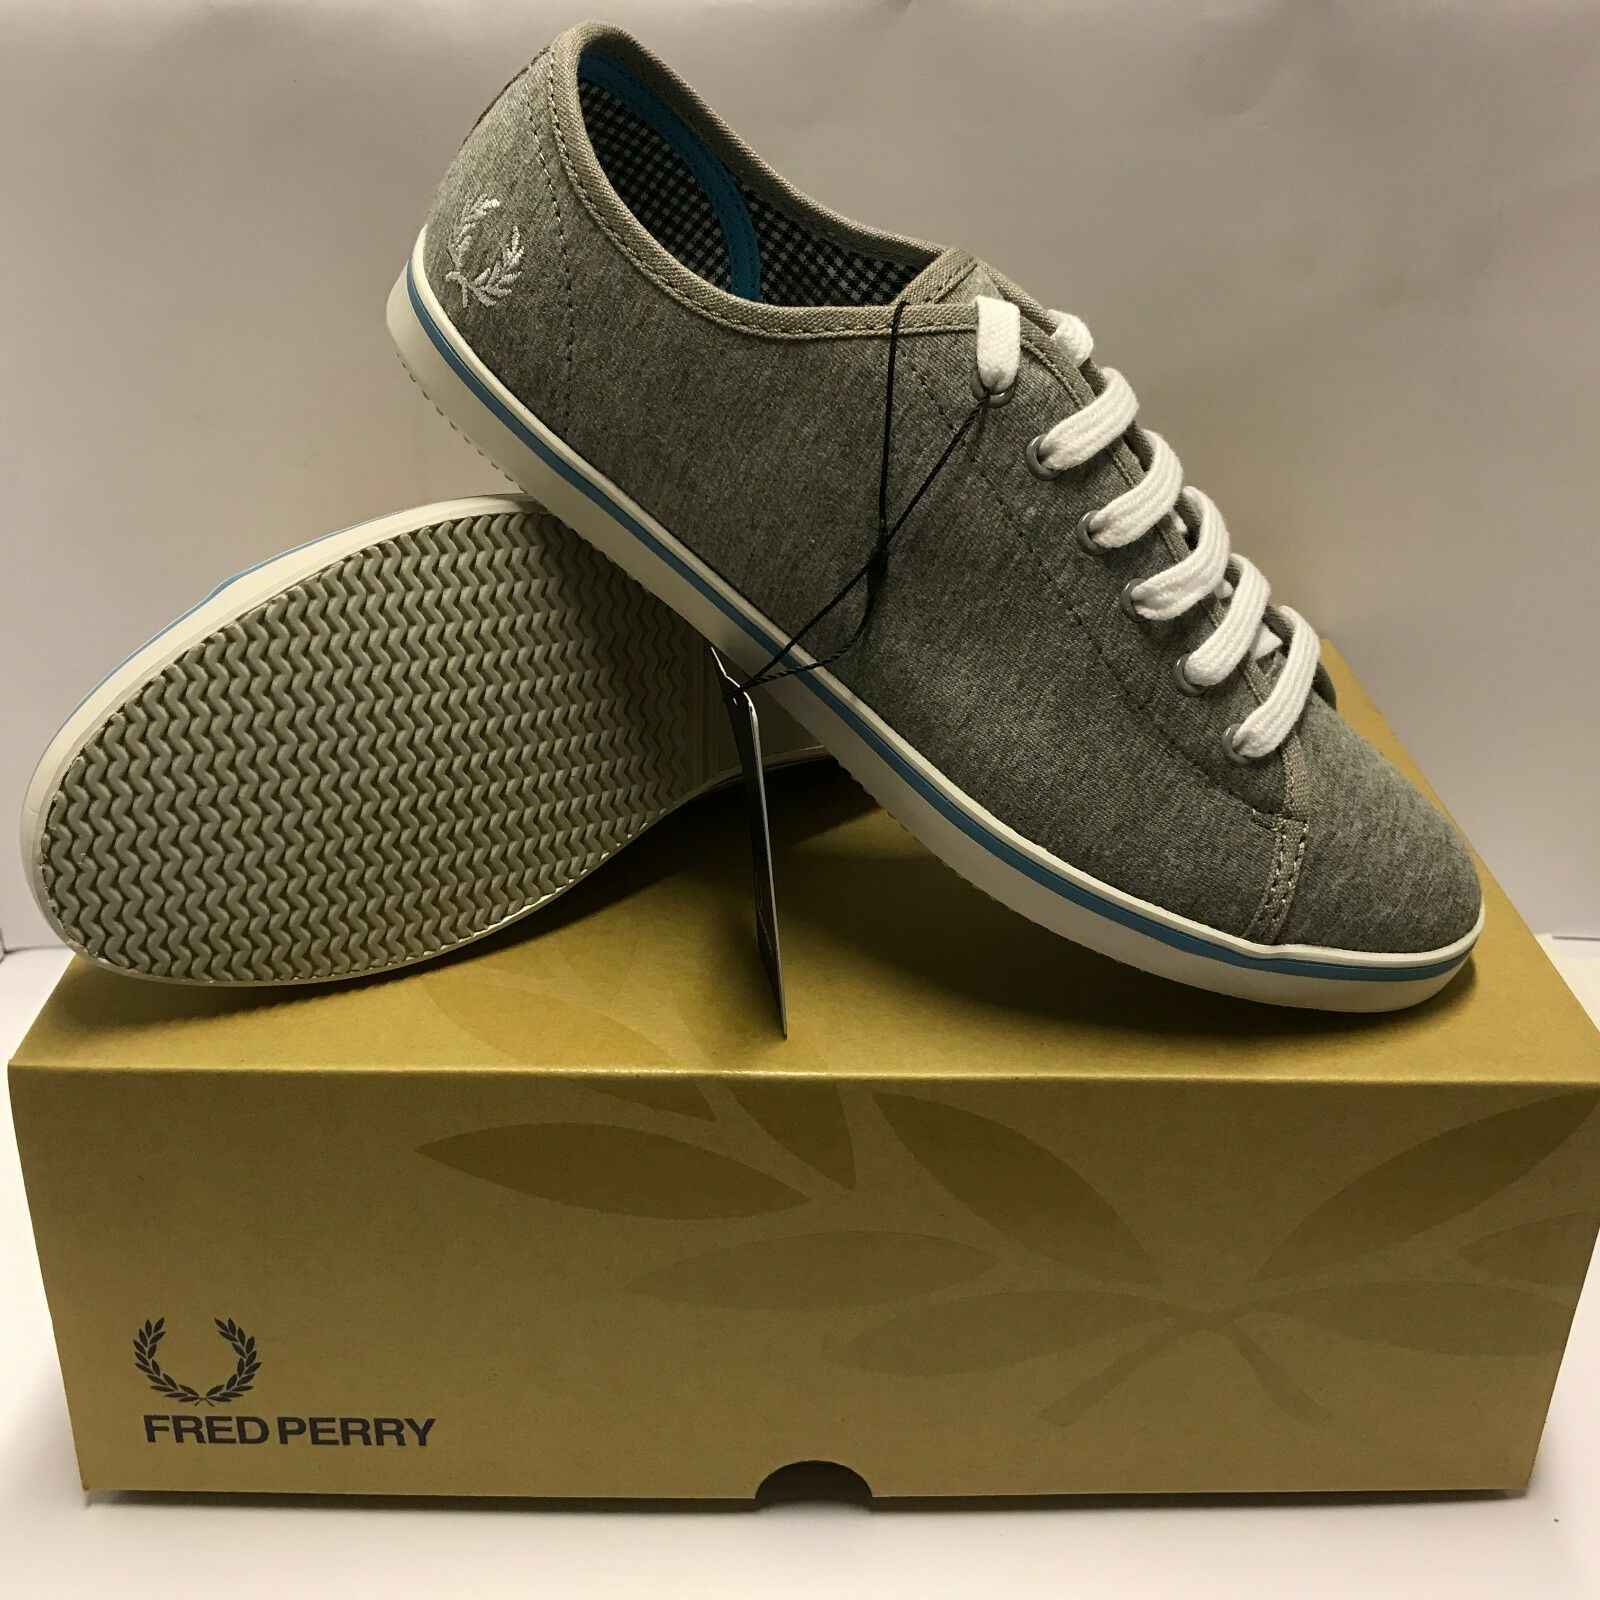 Fred Perry Phoenix Grey Marl Womens Plimsoles Sizes 4,5,6 New